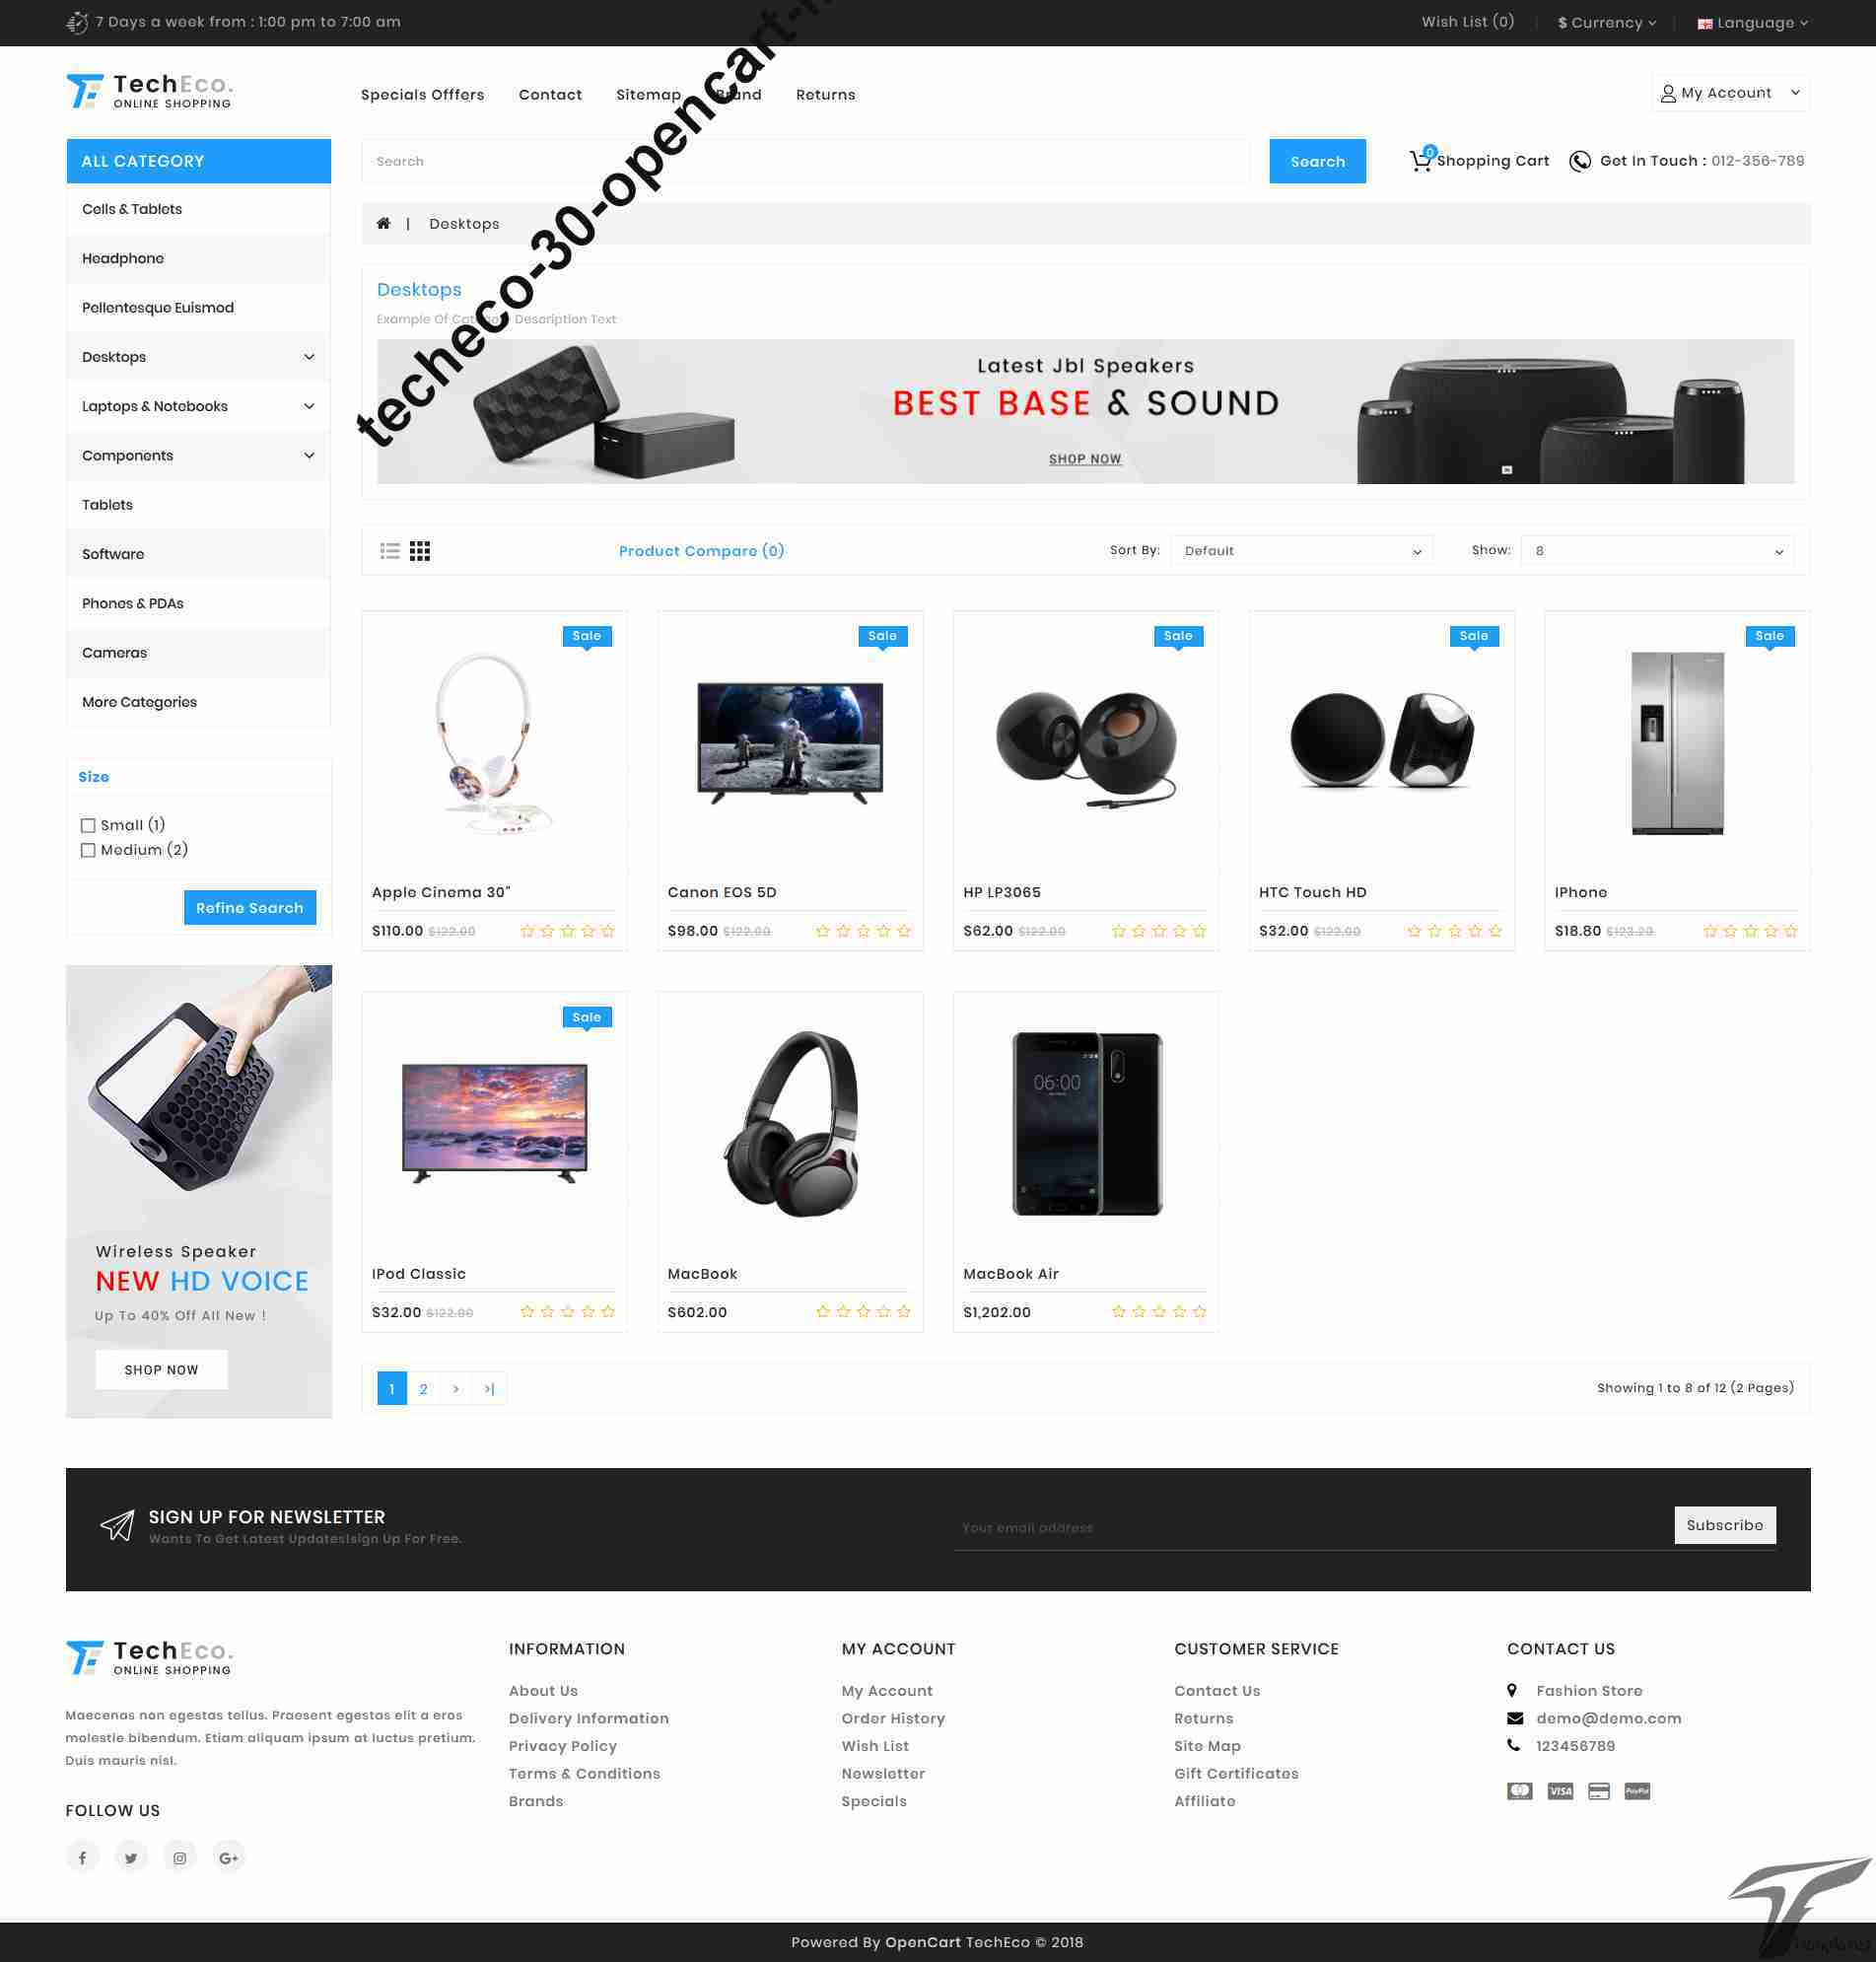 https://images.besthemes.com/images/h1_techeco-30-opencart-multipurpose-responsive-theme3-_-244832862/ScreenShots/02.ThemePreview.png